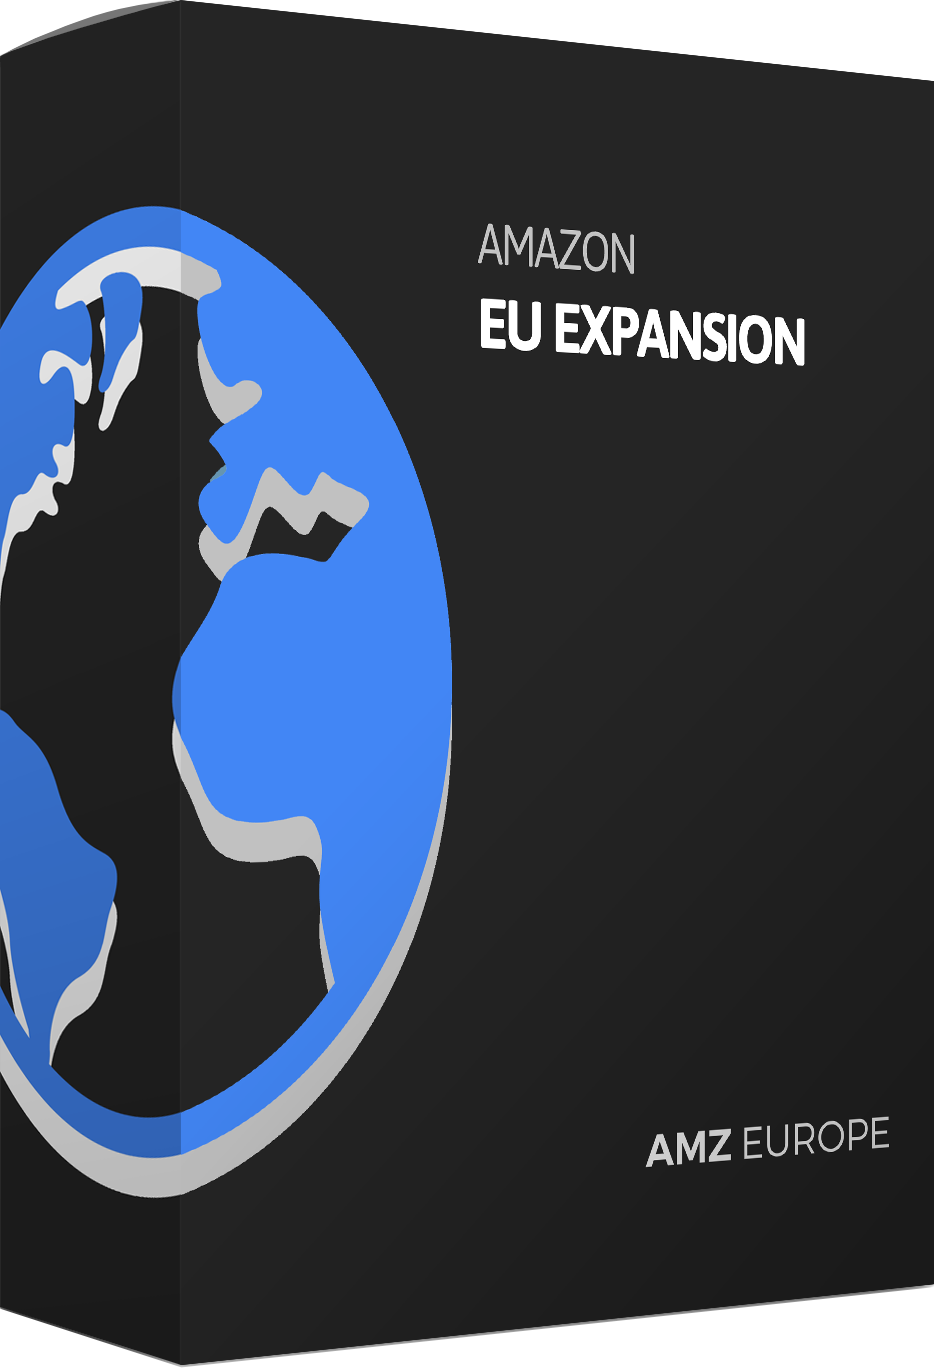 Amazon EU expansion.png